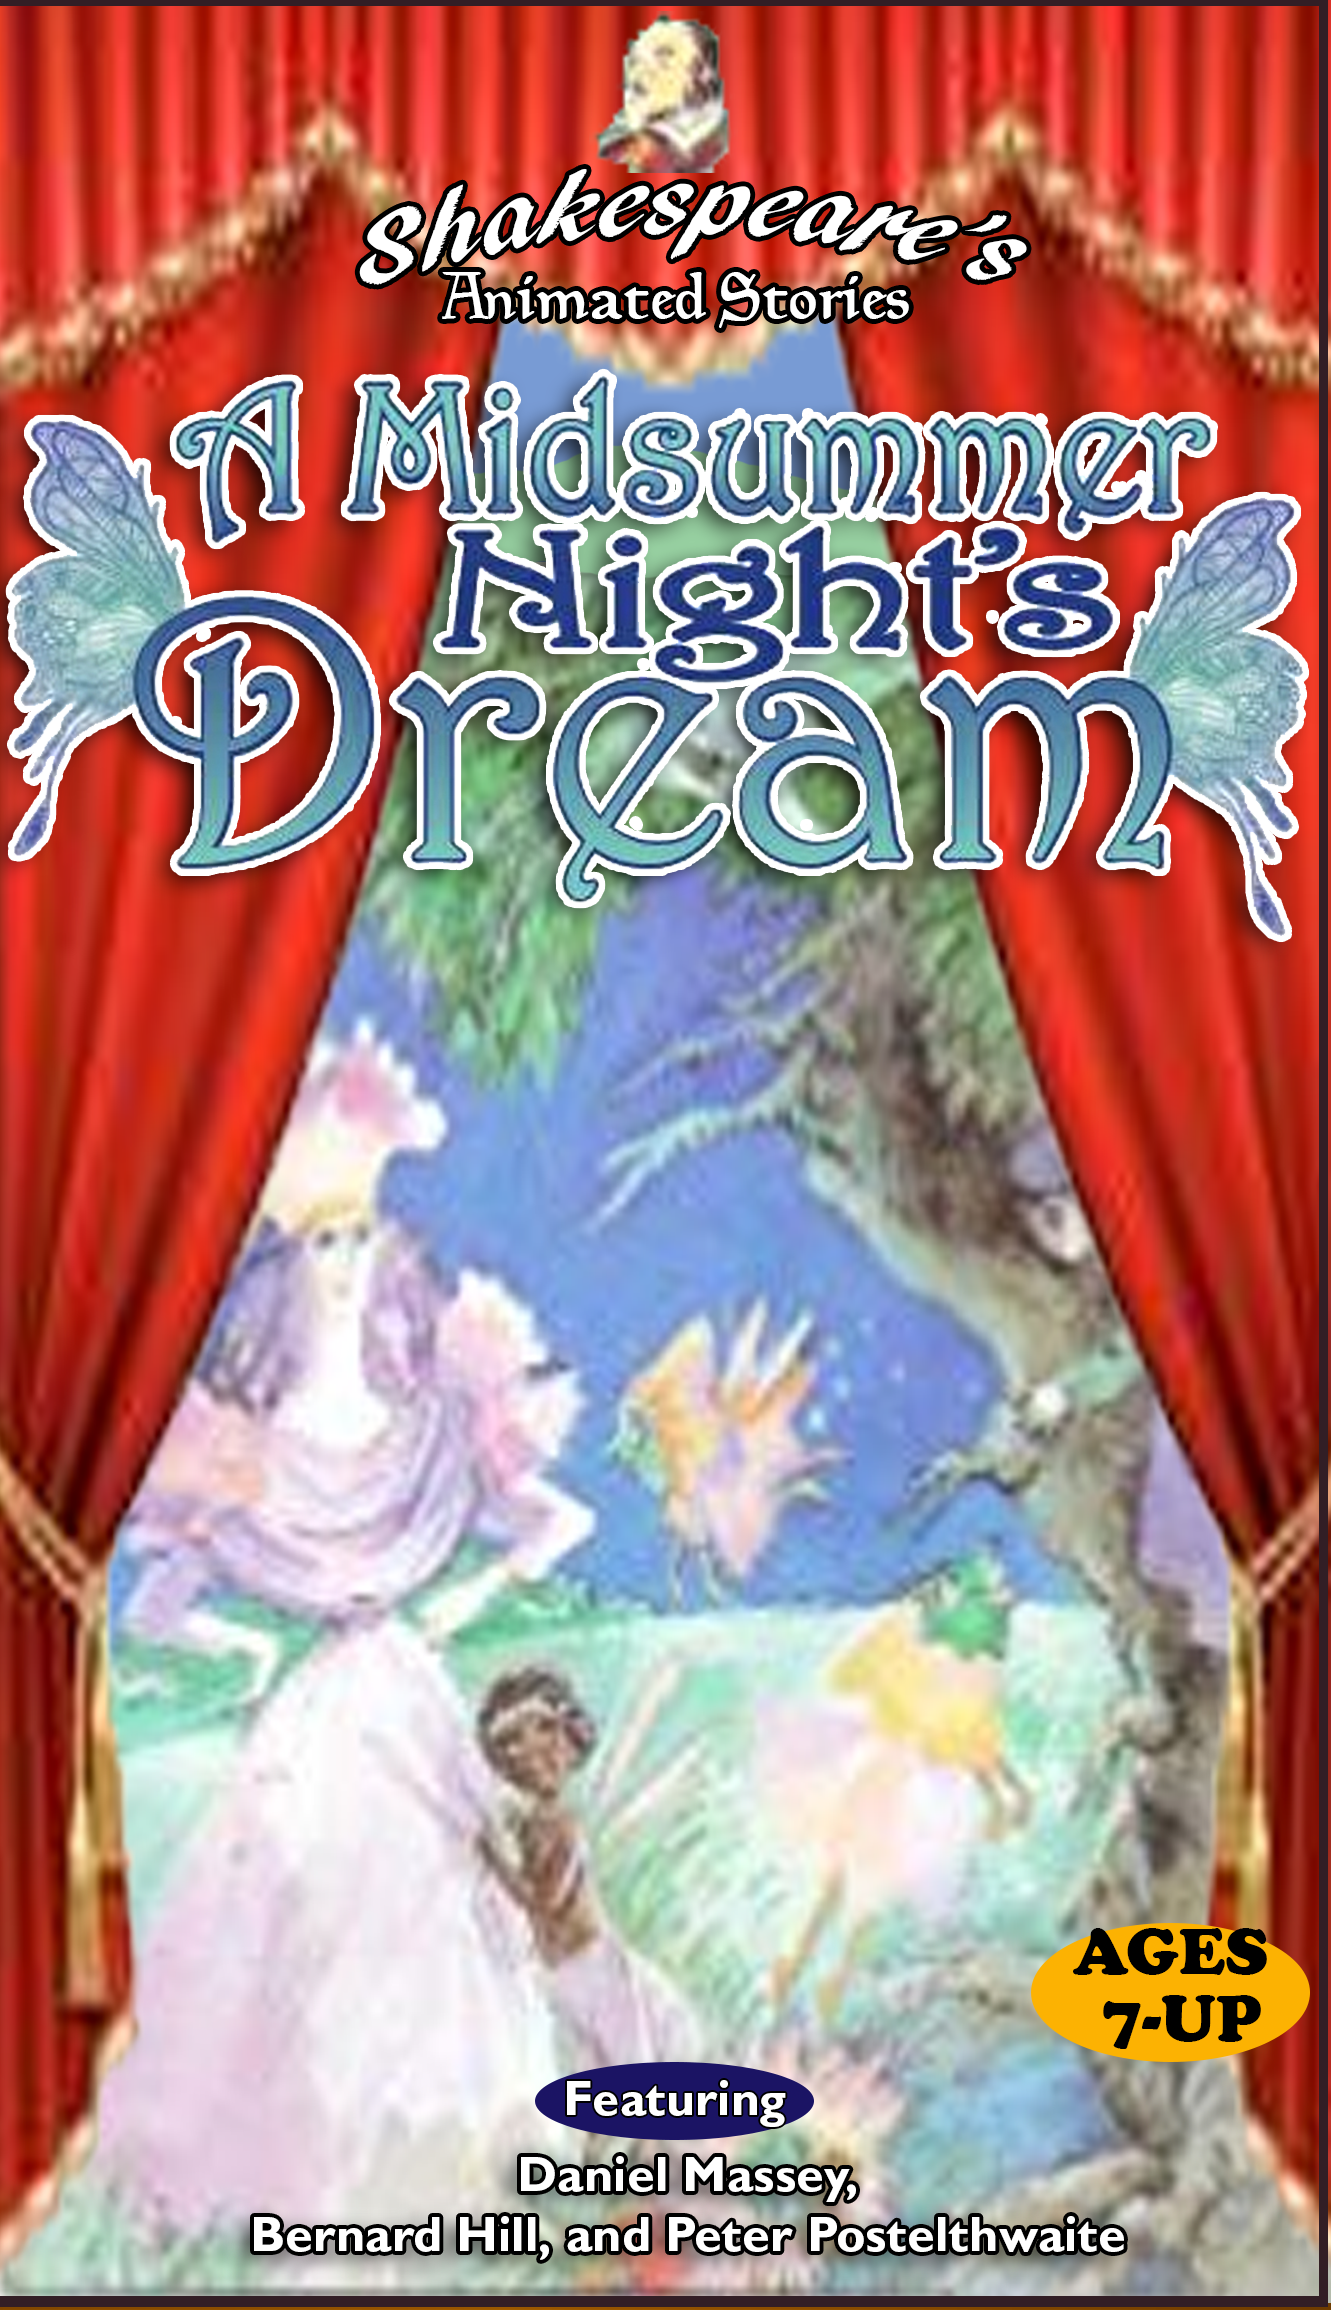 Shakespeare's Animated Stories: A Midsummer Night's Dream (1997 VHS)